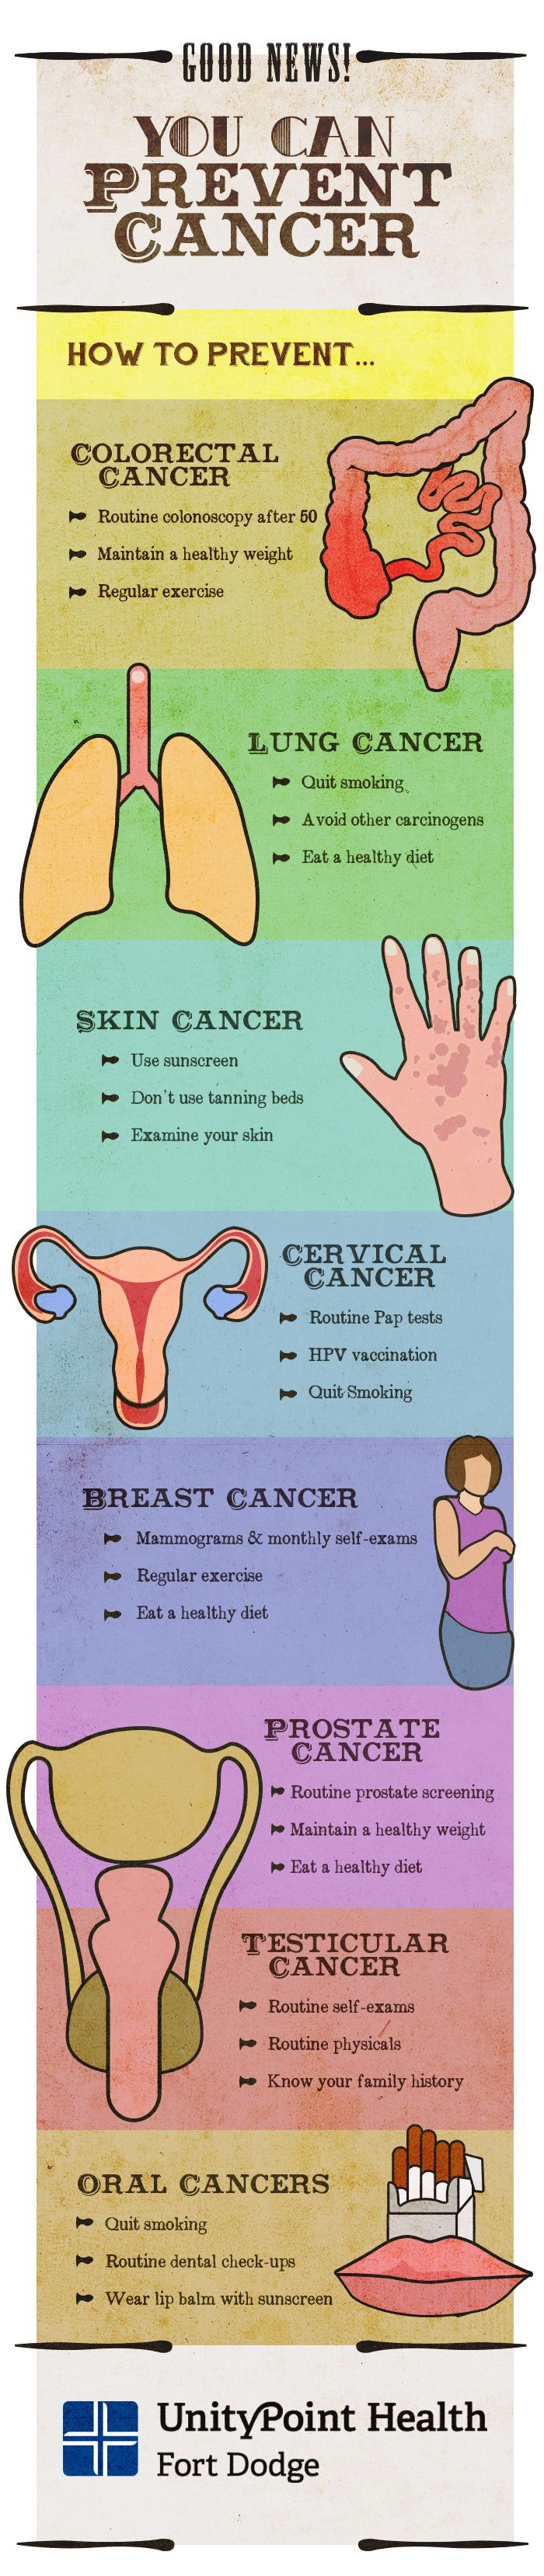 Most preventable and treatable cancers infographic.